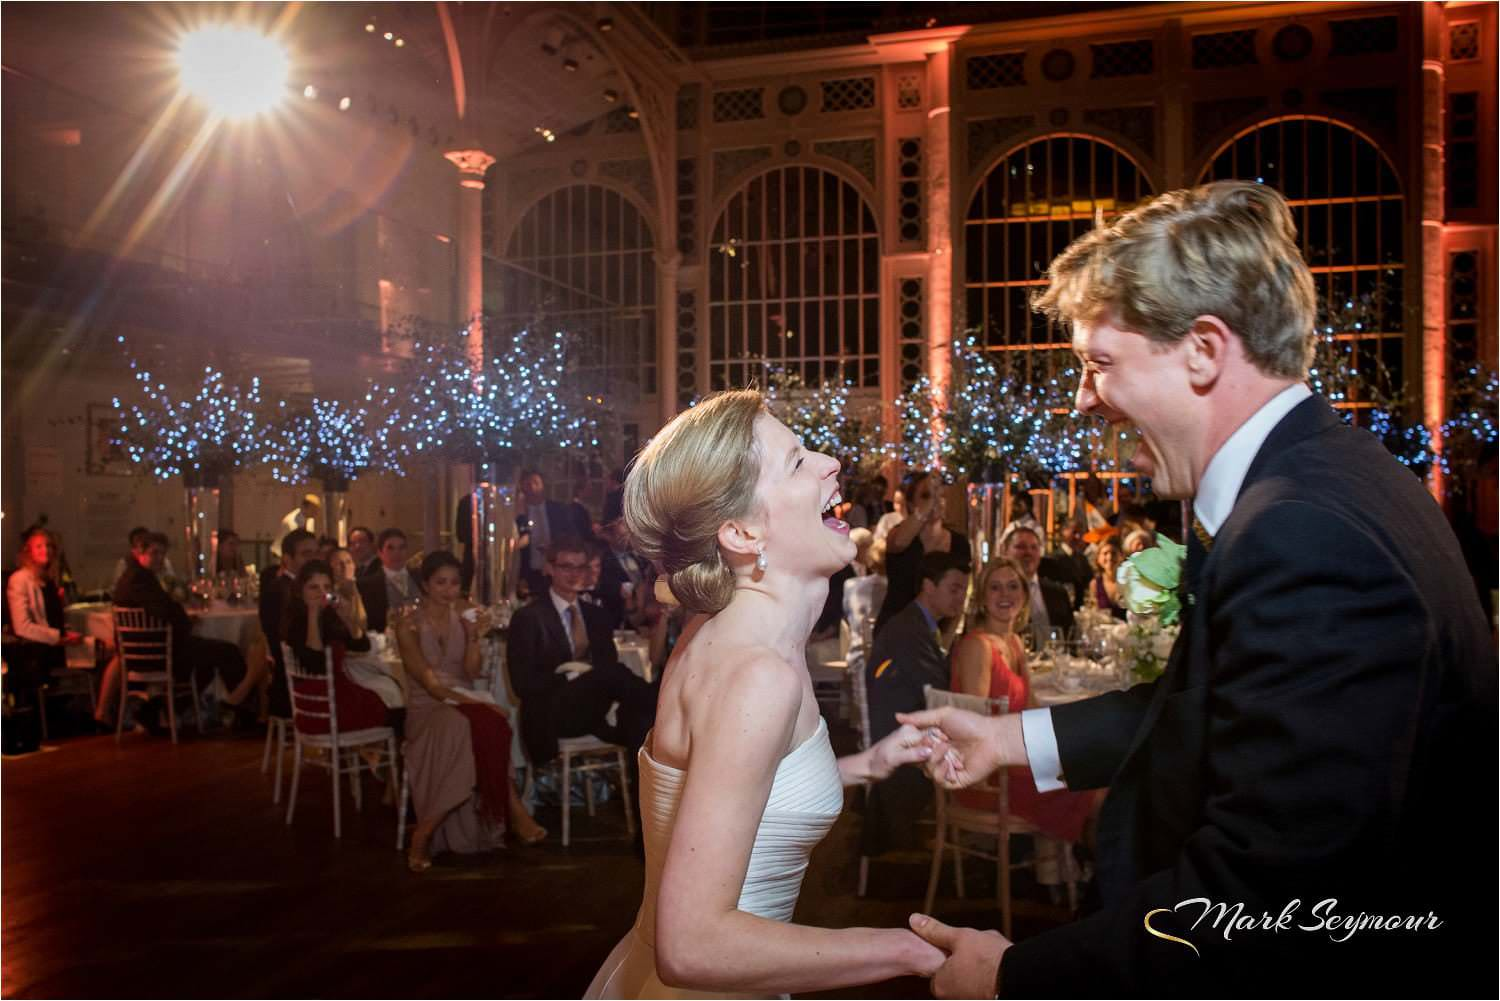 Dancing at a Royal Opera House wedding